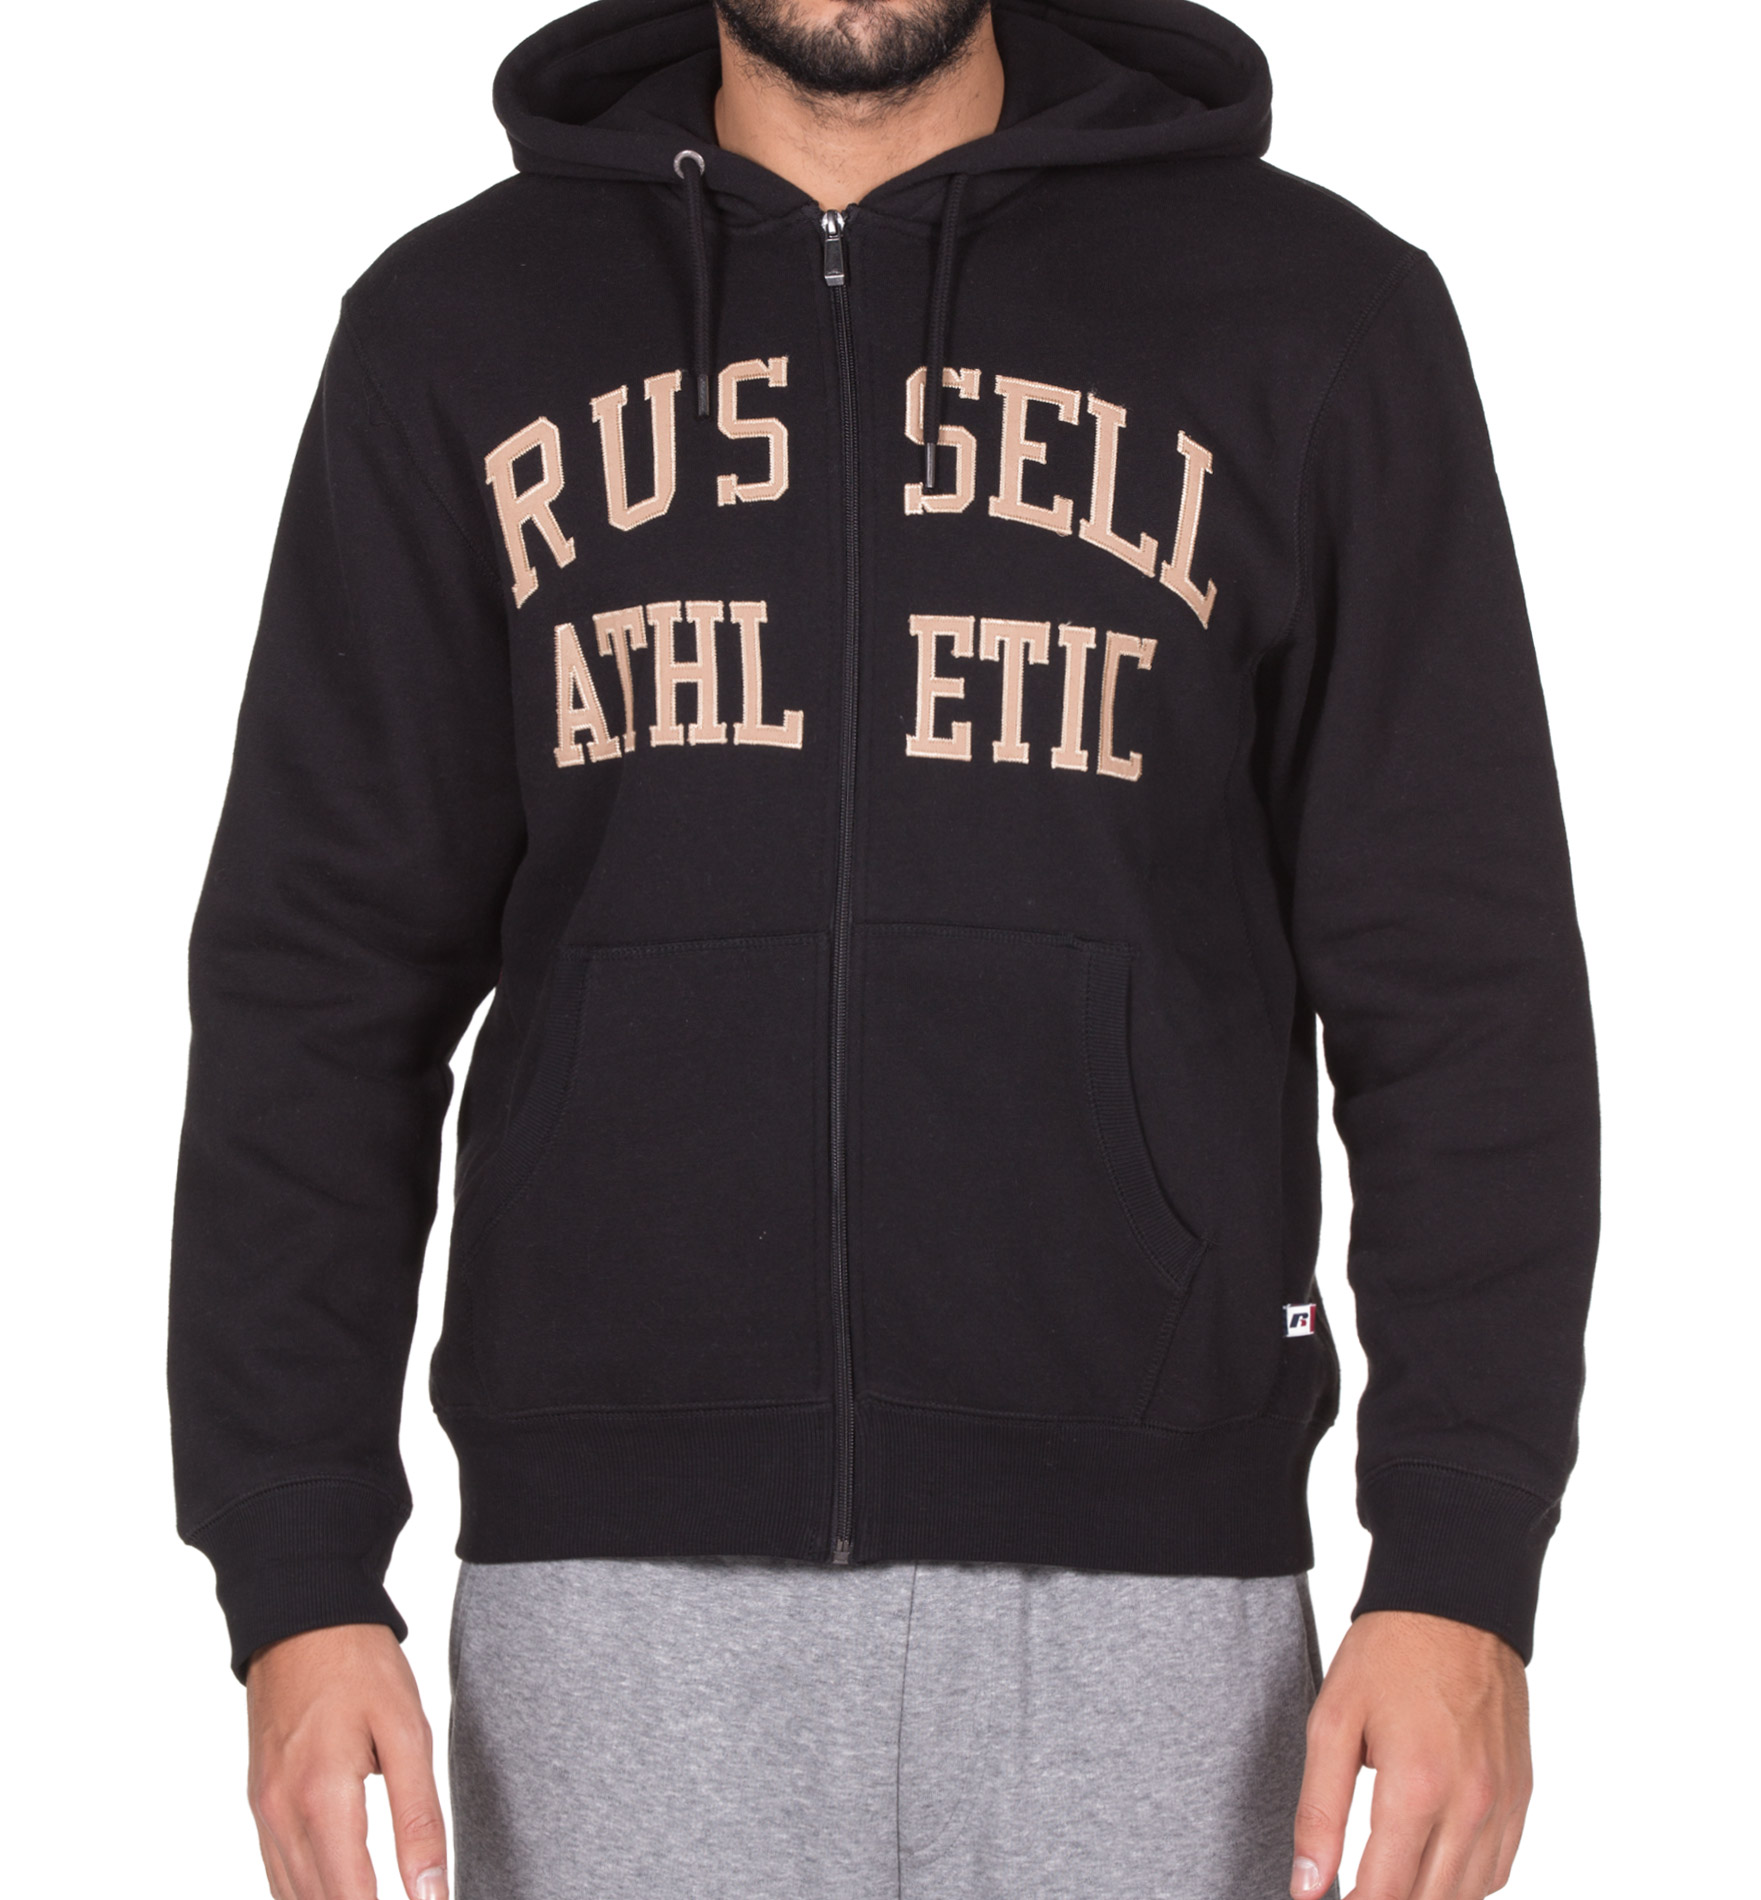 RUSSELL ATHLETIC ZIP THROUGH TACKLE TWILL HOODY A7-007-2-099 Μαύρο